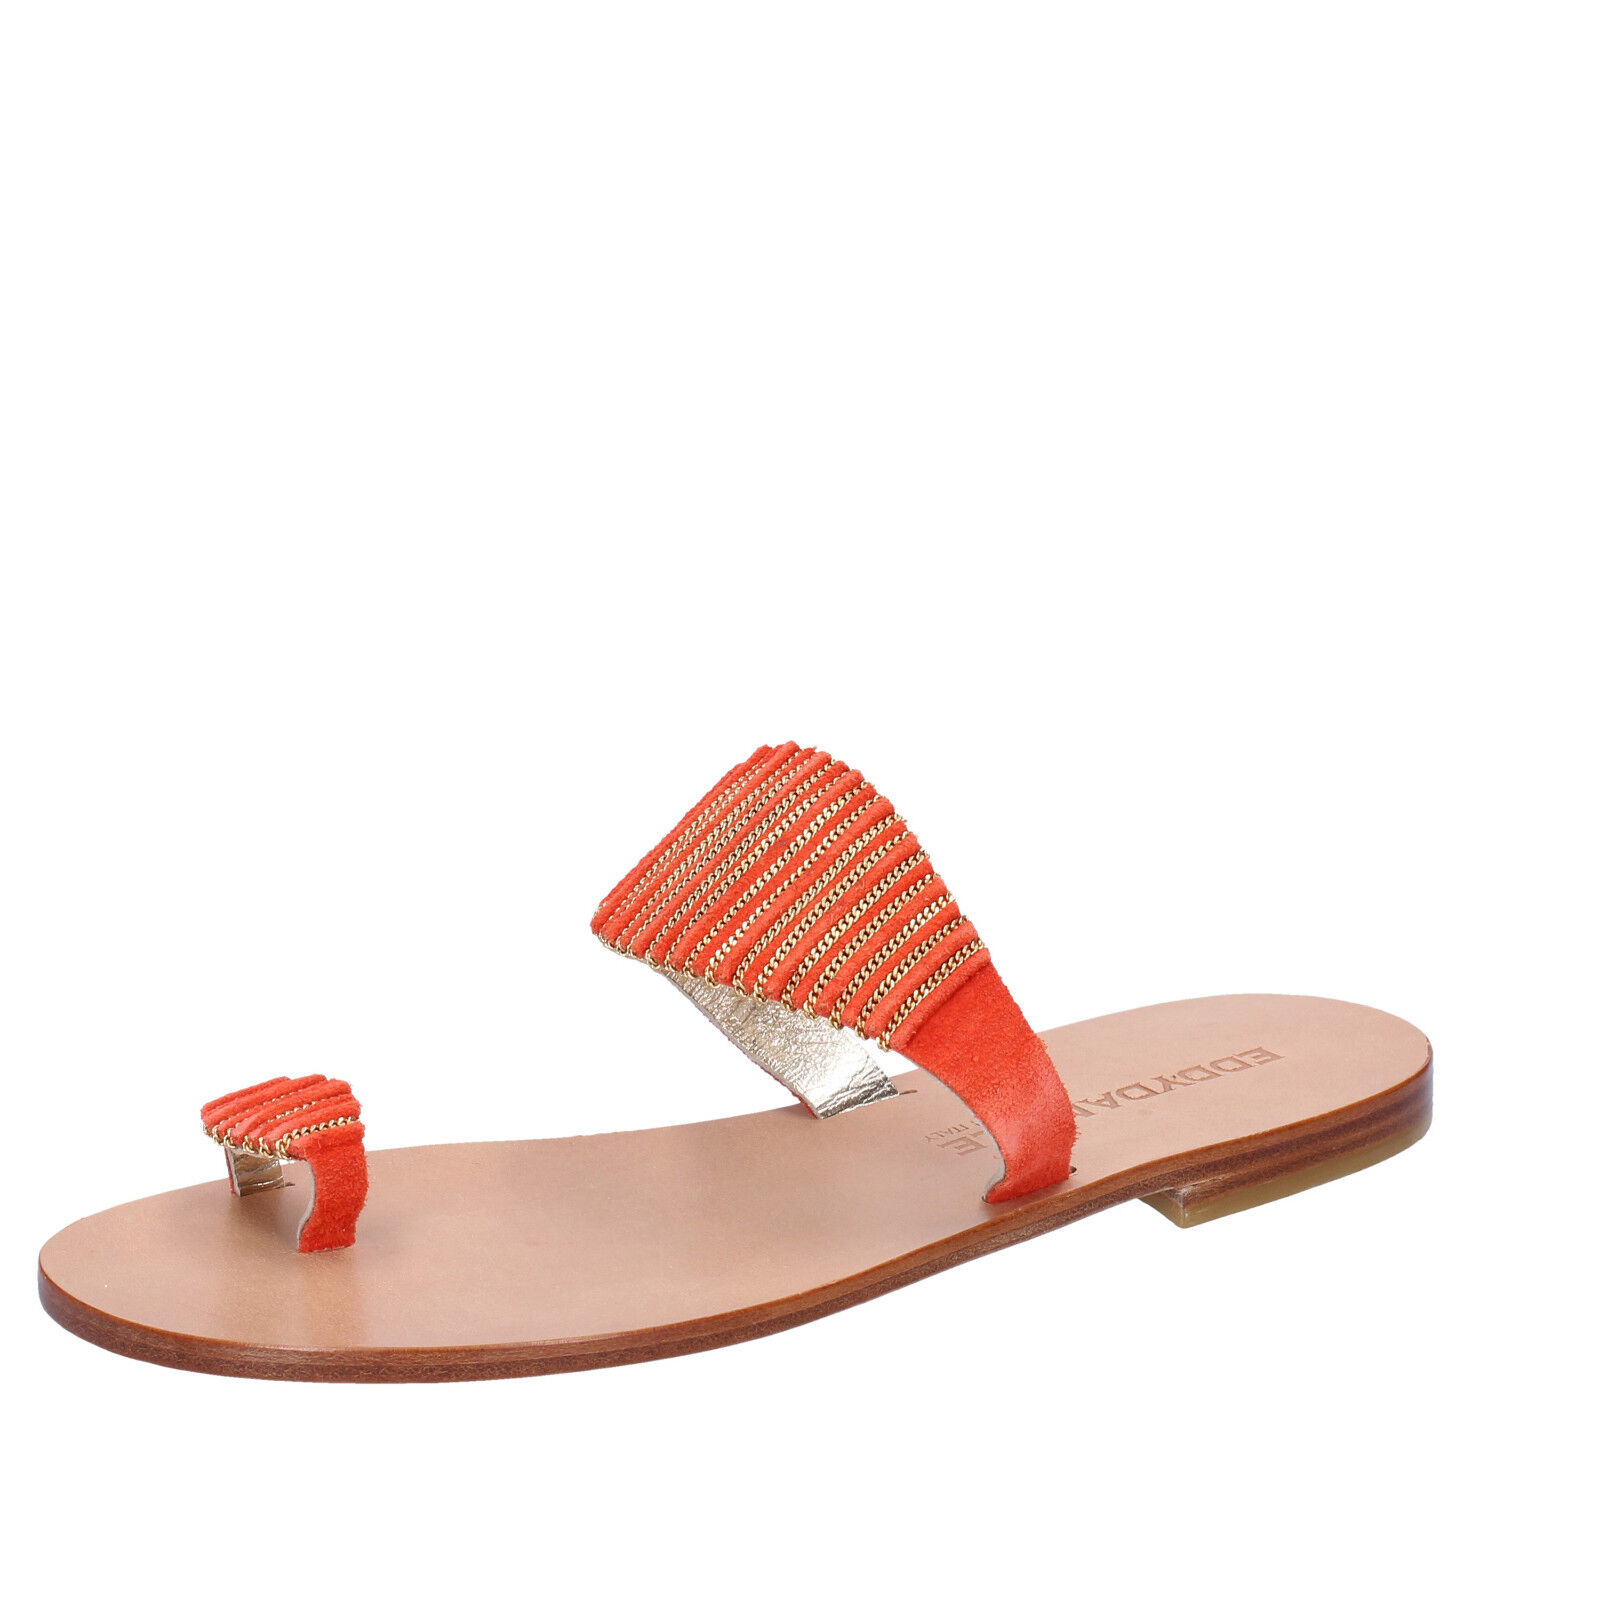 Women's shoes EDDY DANIELE 7 (EU 37) sandals orange suede AX933-37